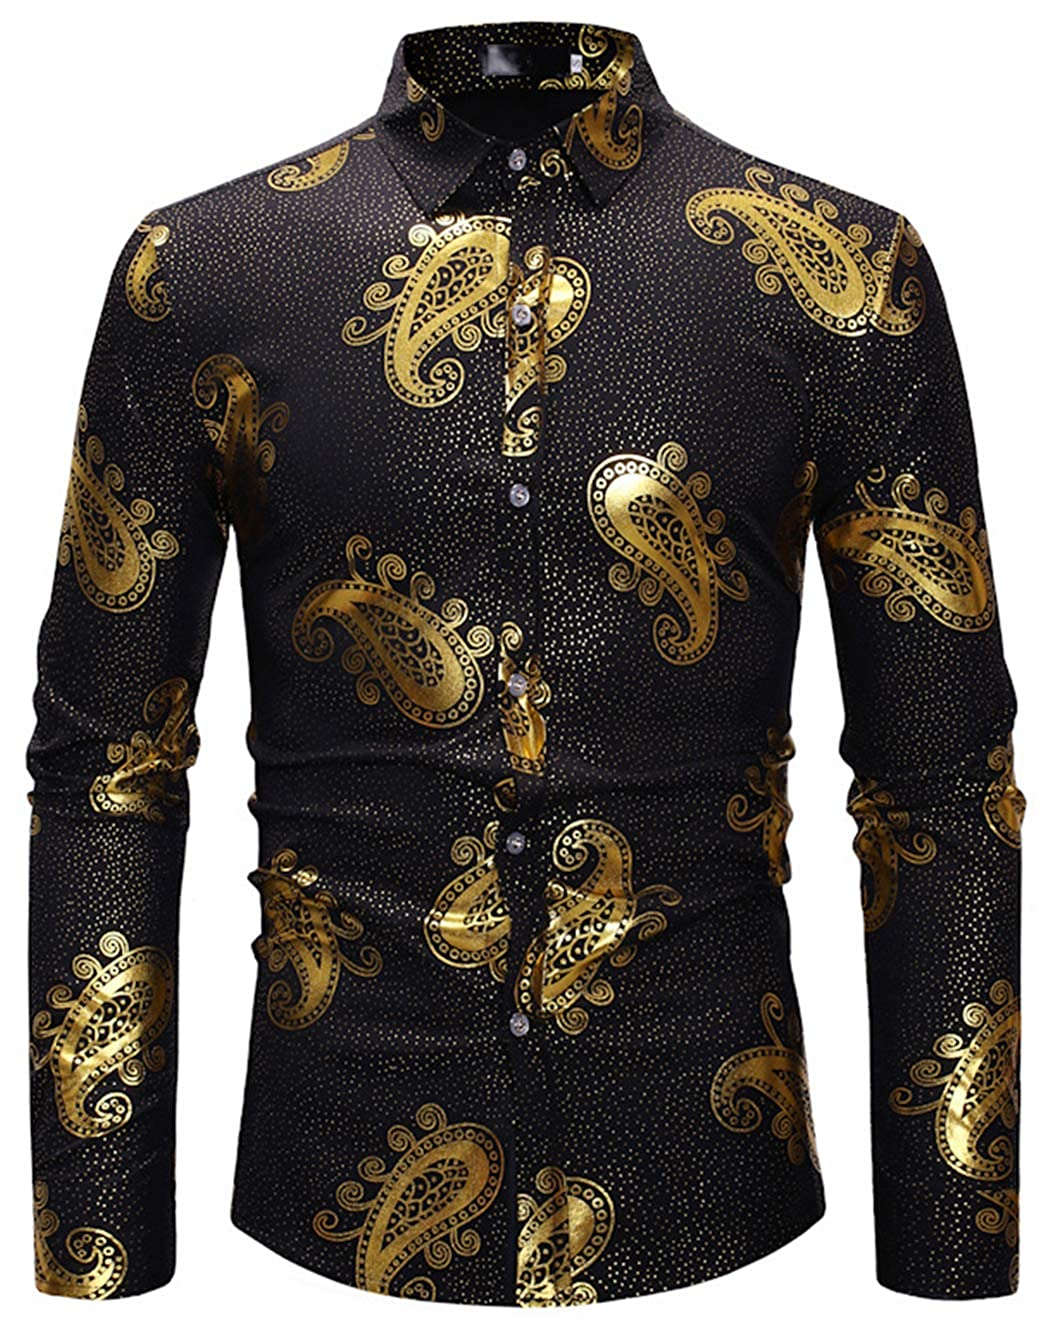 ebf28791f452 HOP Fashion Men s Luxury Gold Paisley Shirts Long Sleeve Slim Fit Button  Down Dress Shirts for Wedding Party Night Club at Amazon Men s Clothing  store